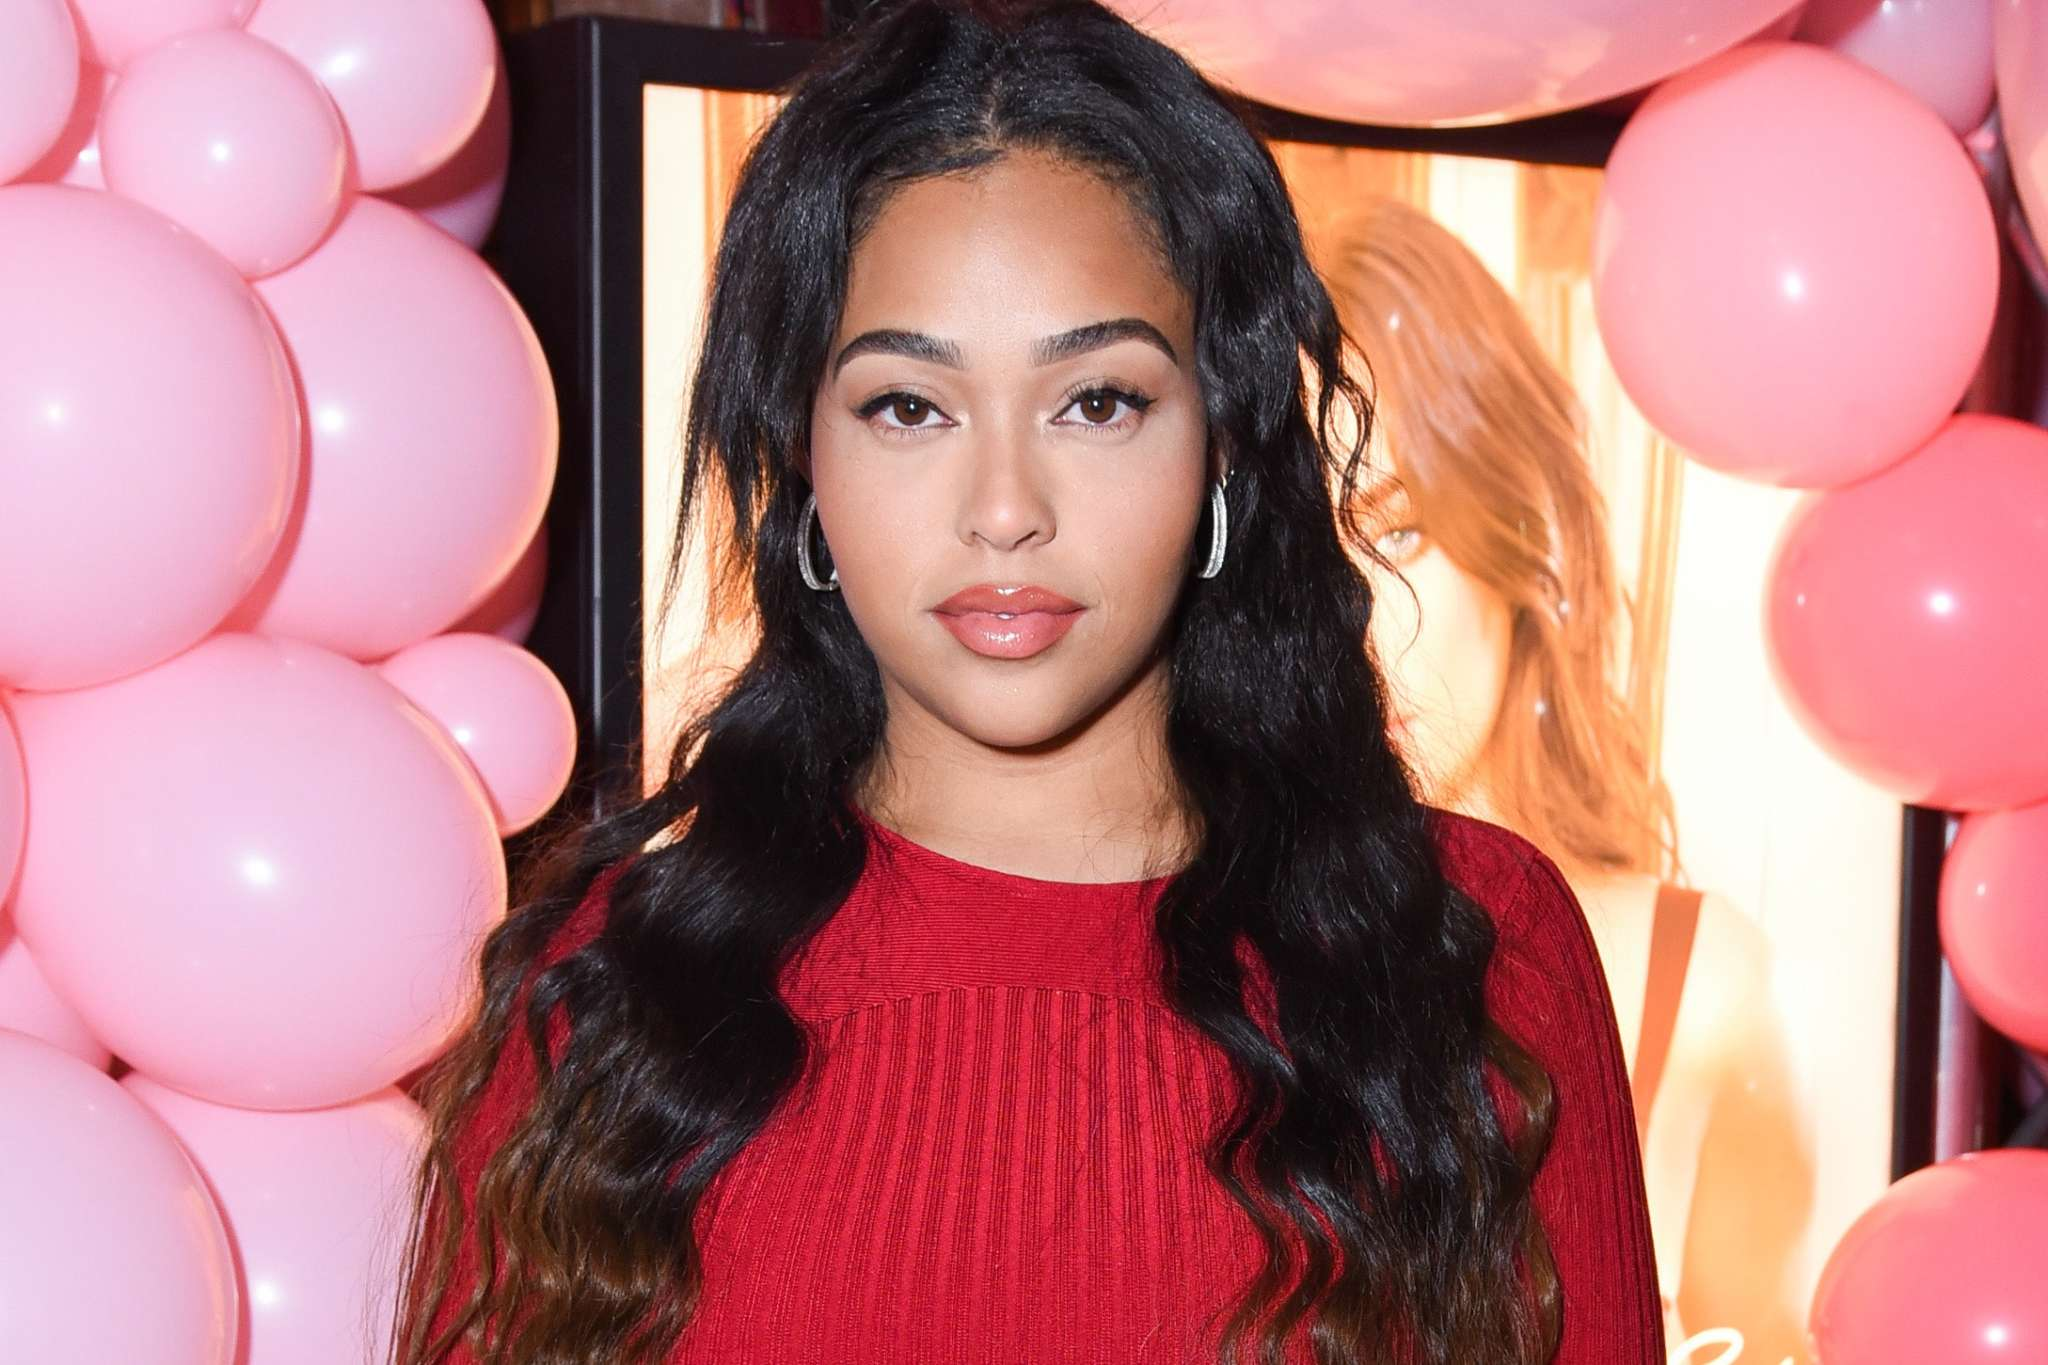 Jordyn Woods Is Glowing In Her Latest Photo – Check Her Out Driving This Red Beauty